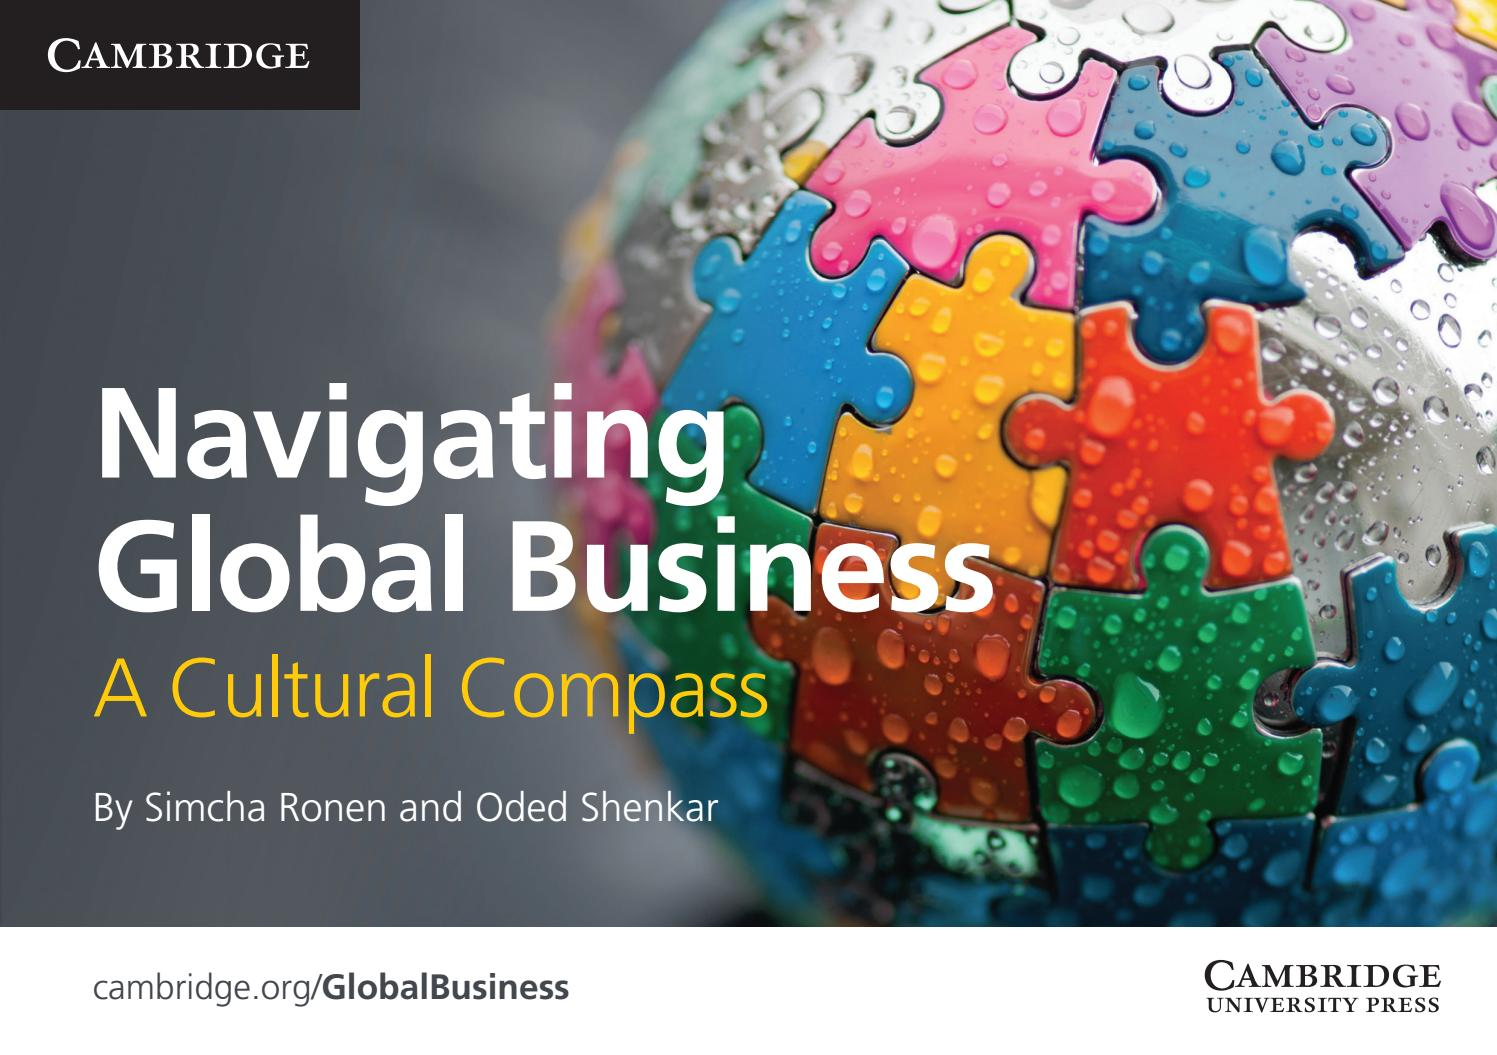 global cultural analysis Global business knowledge portal connecting international business professionals to a wealth of information, insights, and learning resources on global business activities globaledge is a gateway to specialized international business research knowledge on countries, cross-border business transactions, and cross-cultural management.